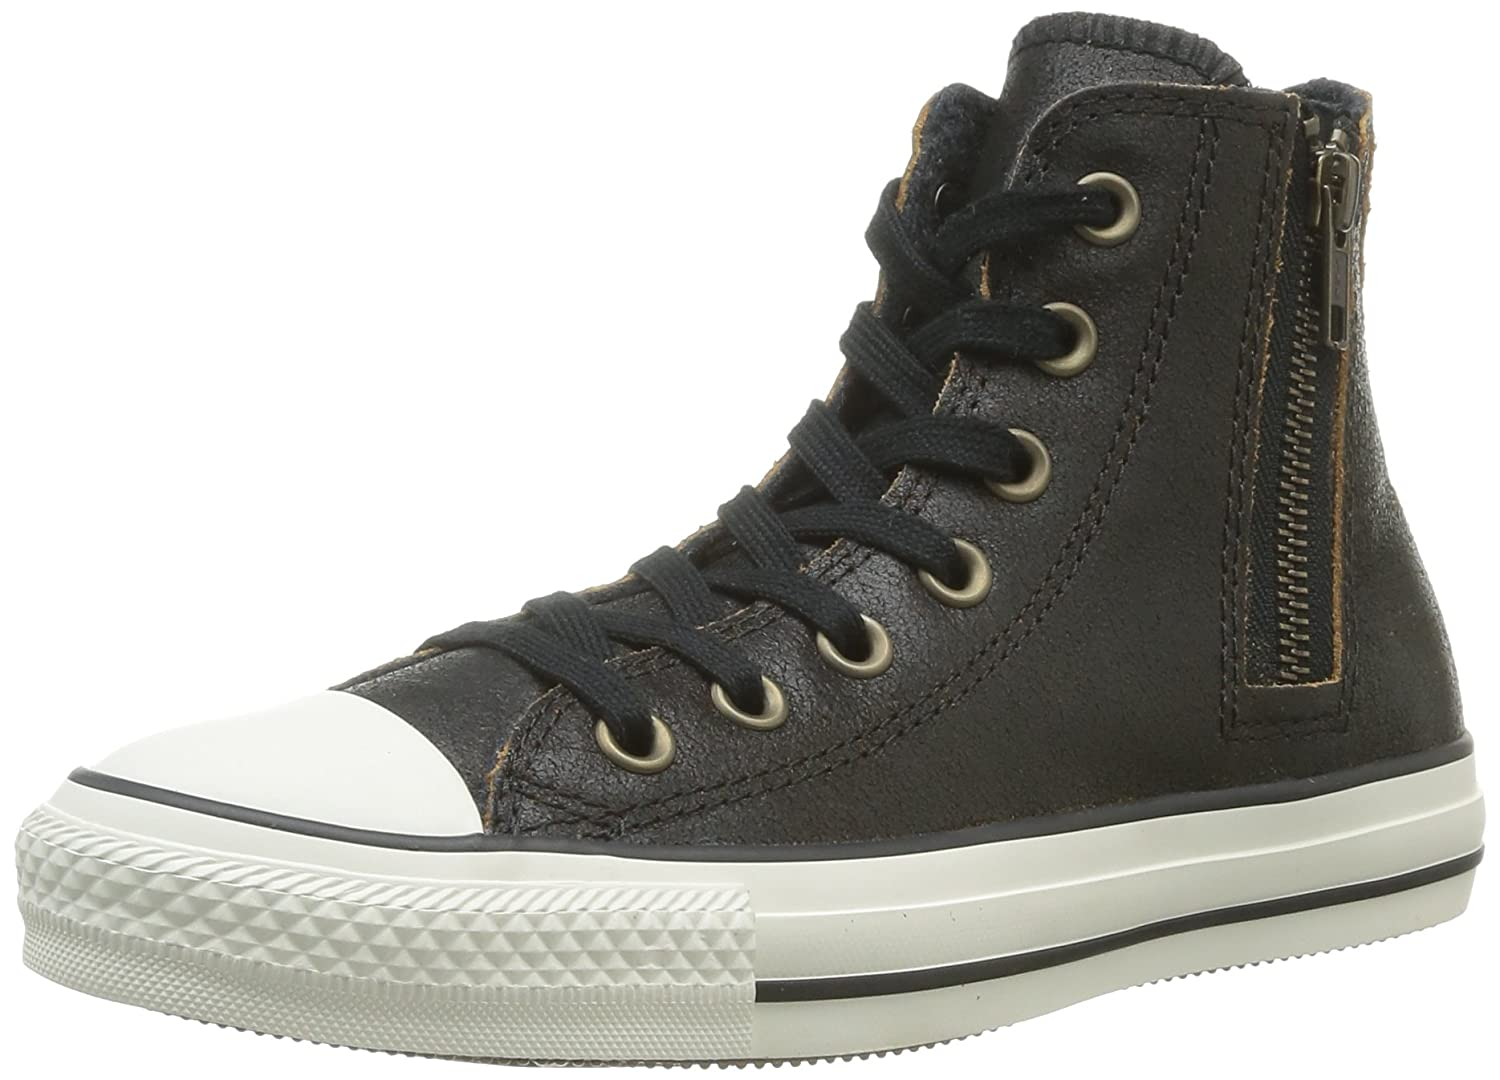 583409ee9521 Converse Chuck Taylor All Stars Side Zip Leather Shoes  9Napu0109351 ...